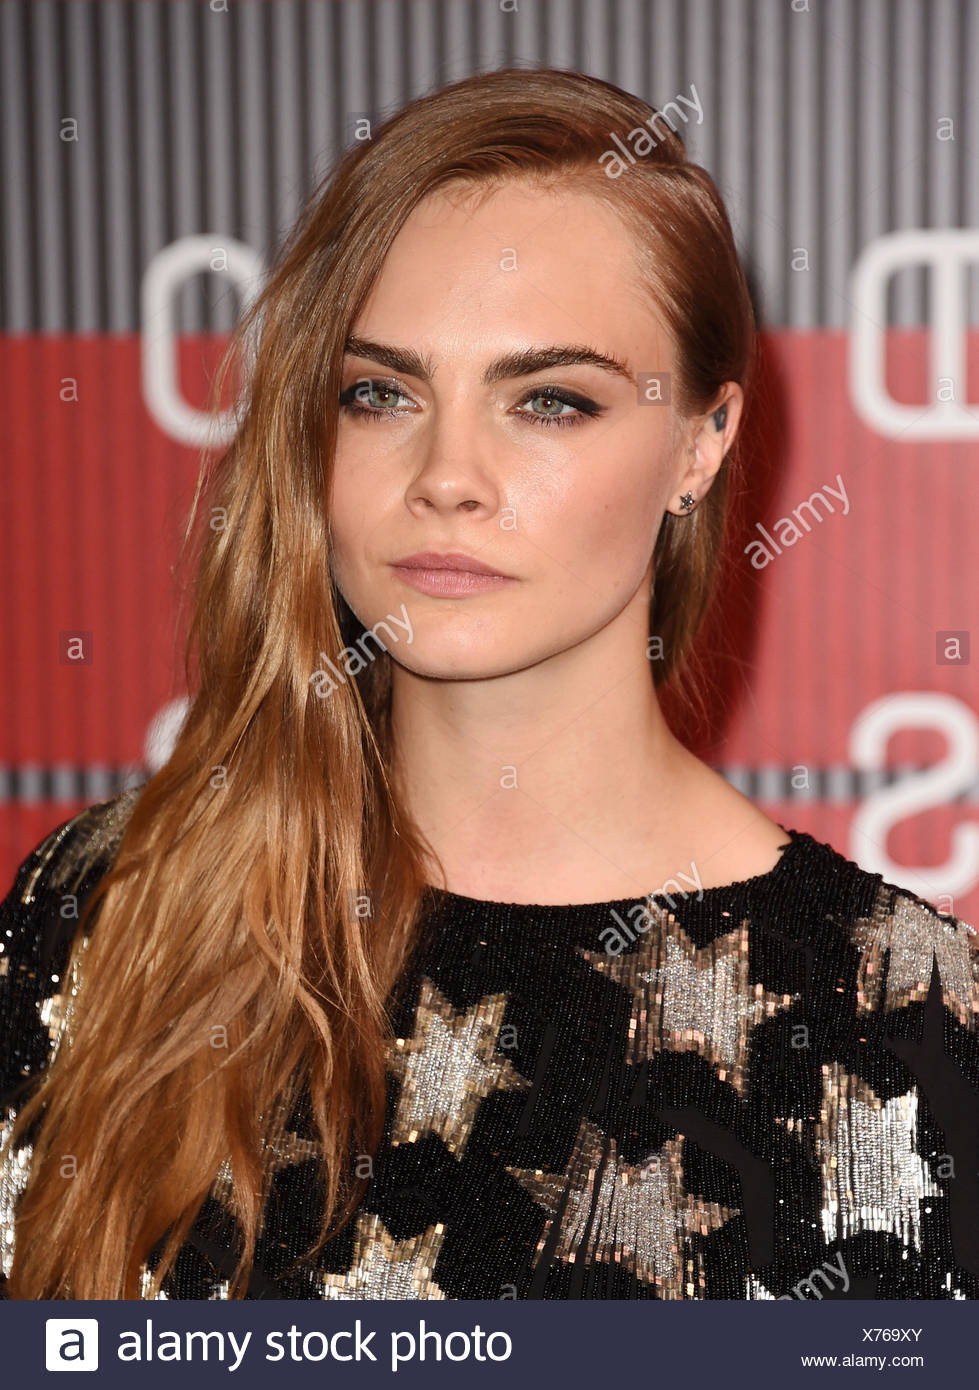 Modelo Cara Delevingne llega a los MTV Video Music Awards 2015 en Microsoft Theatre el 30 de agosto de 2015 en Los Angeles, California., Additional-Rights-juegos-NA Imagen De Stock